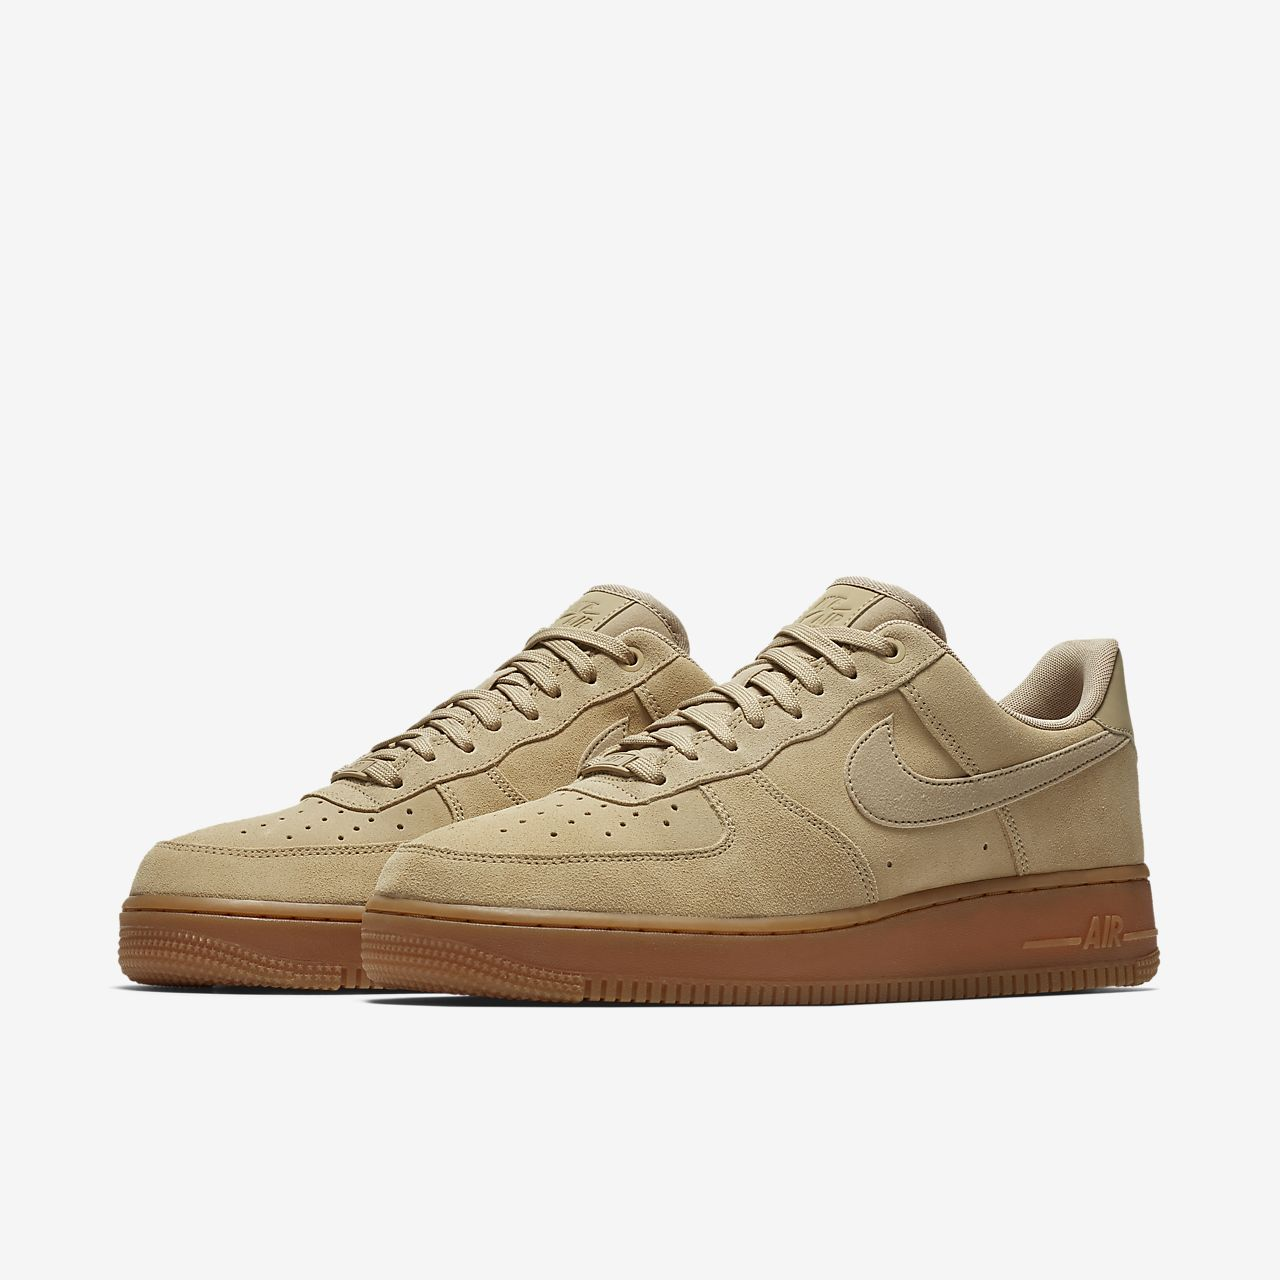 Chaussure Nike Air Force 1 07 LV8 Suede pour Homme